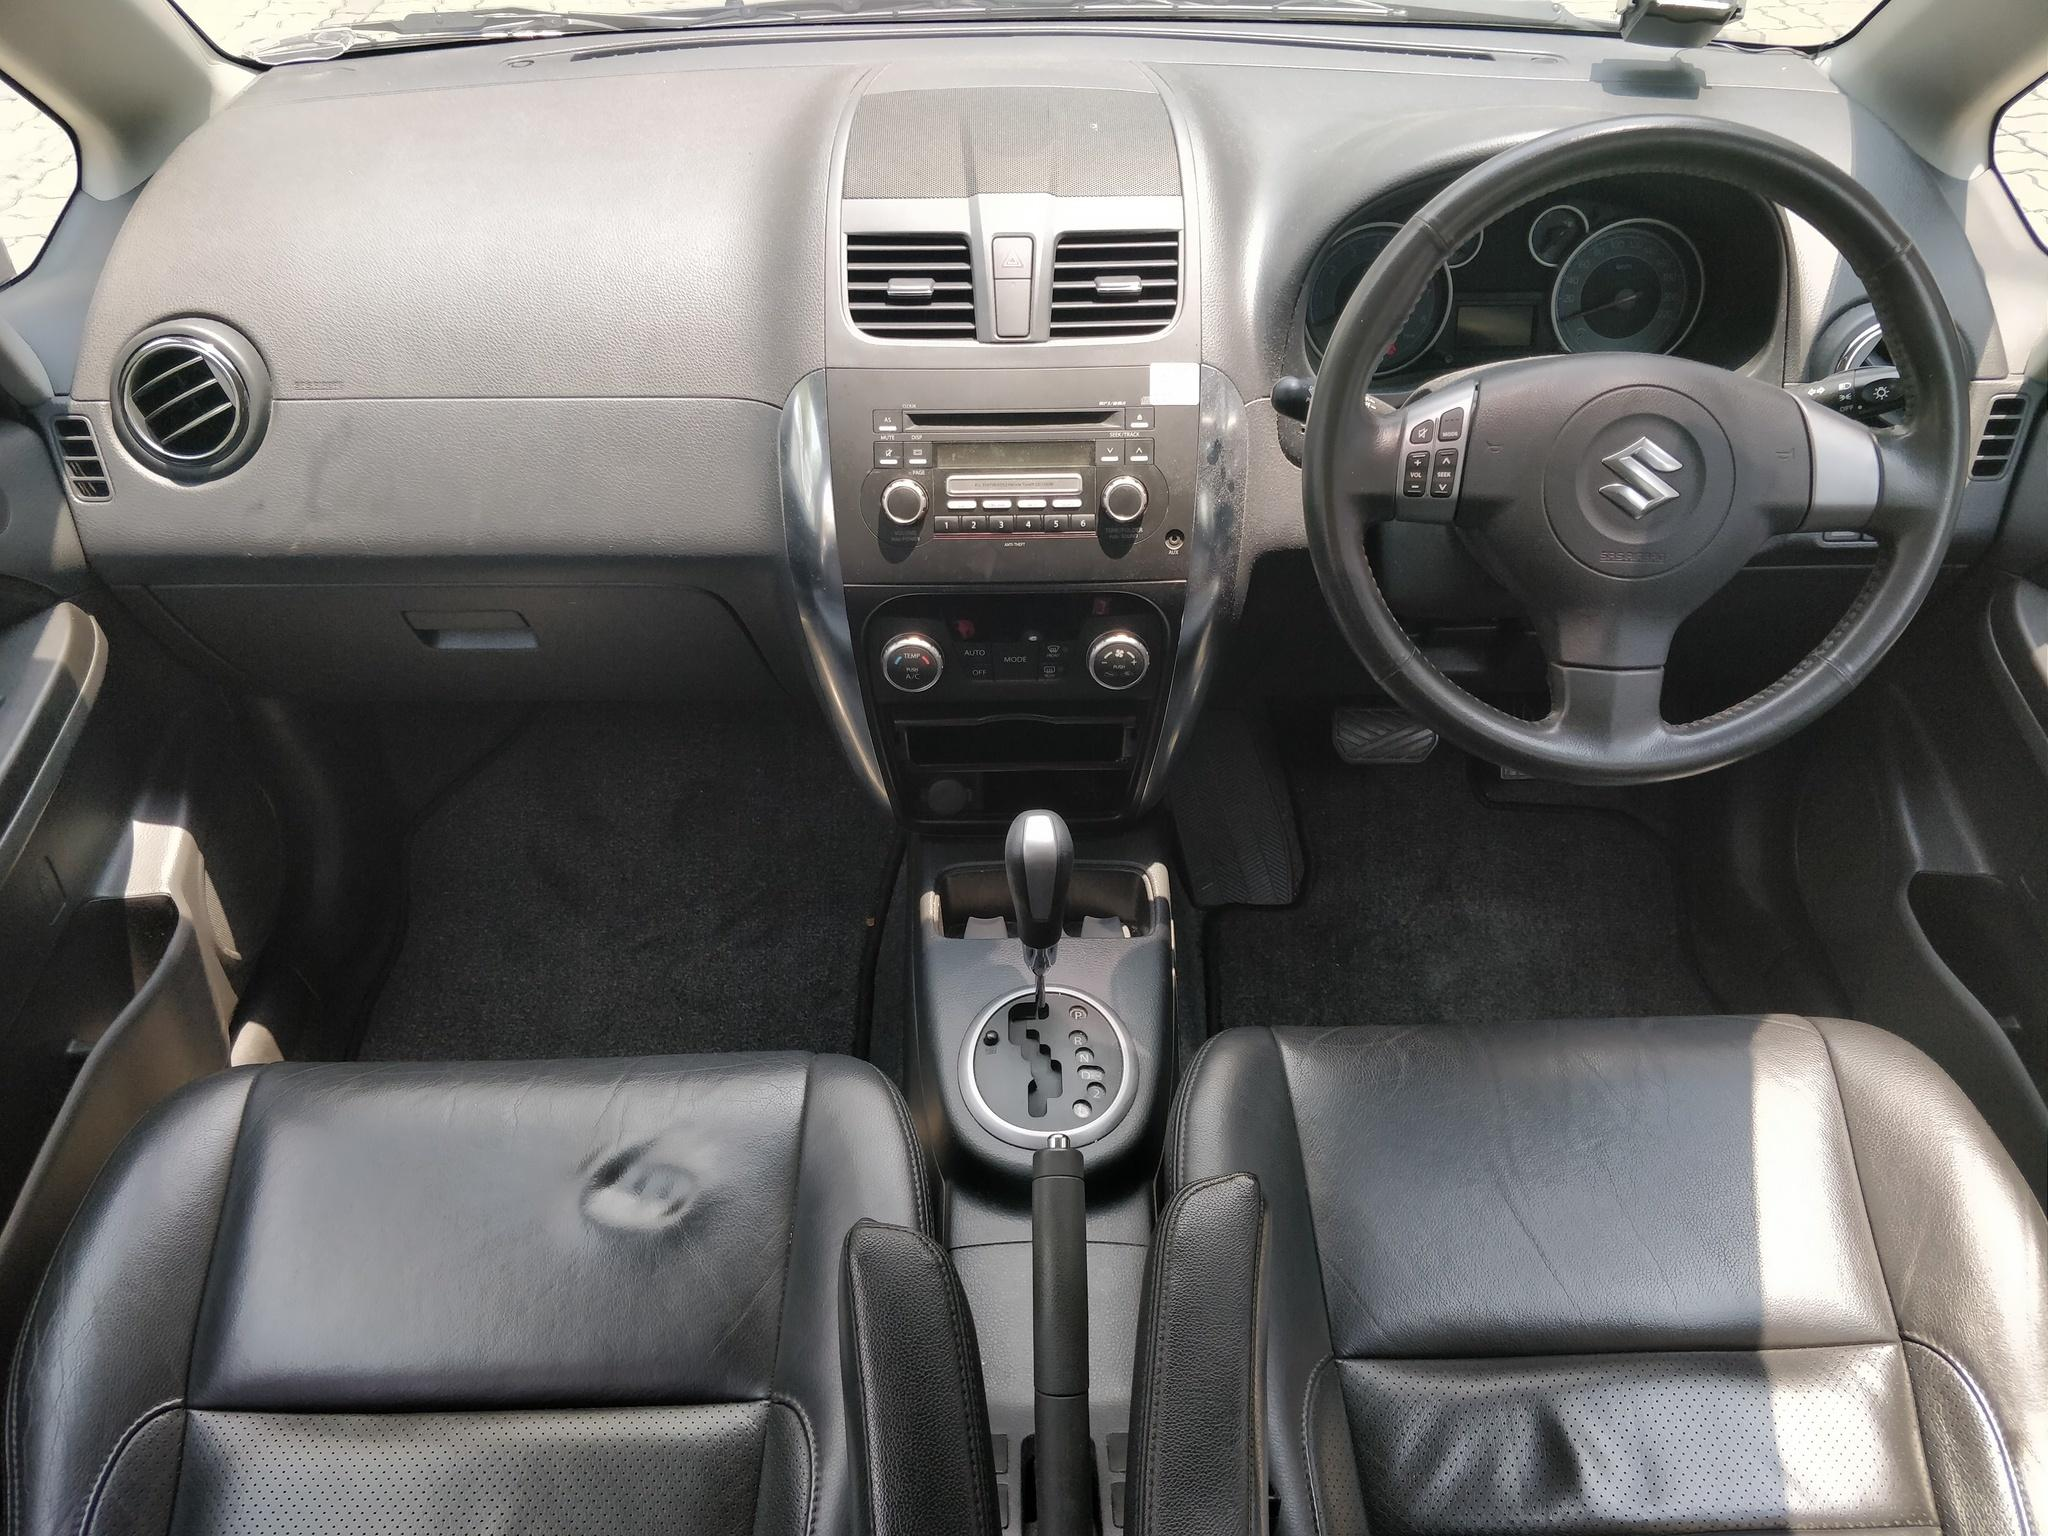 Suzuki SX4 - Lowest rental rates, with many choices to choose from!